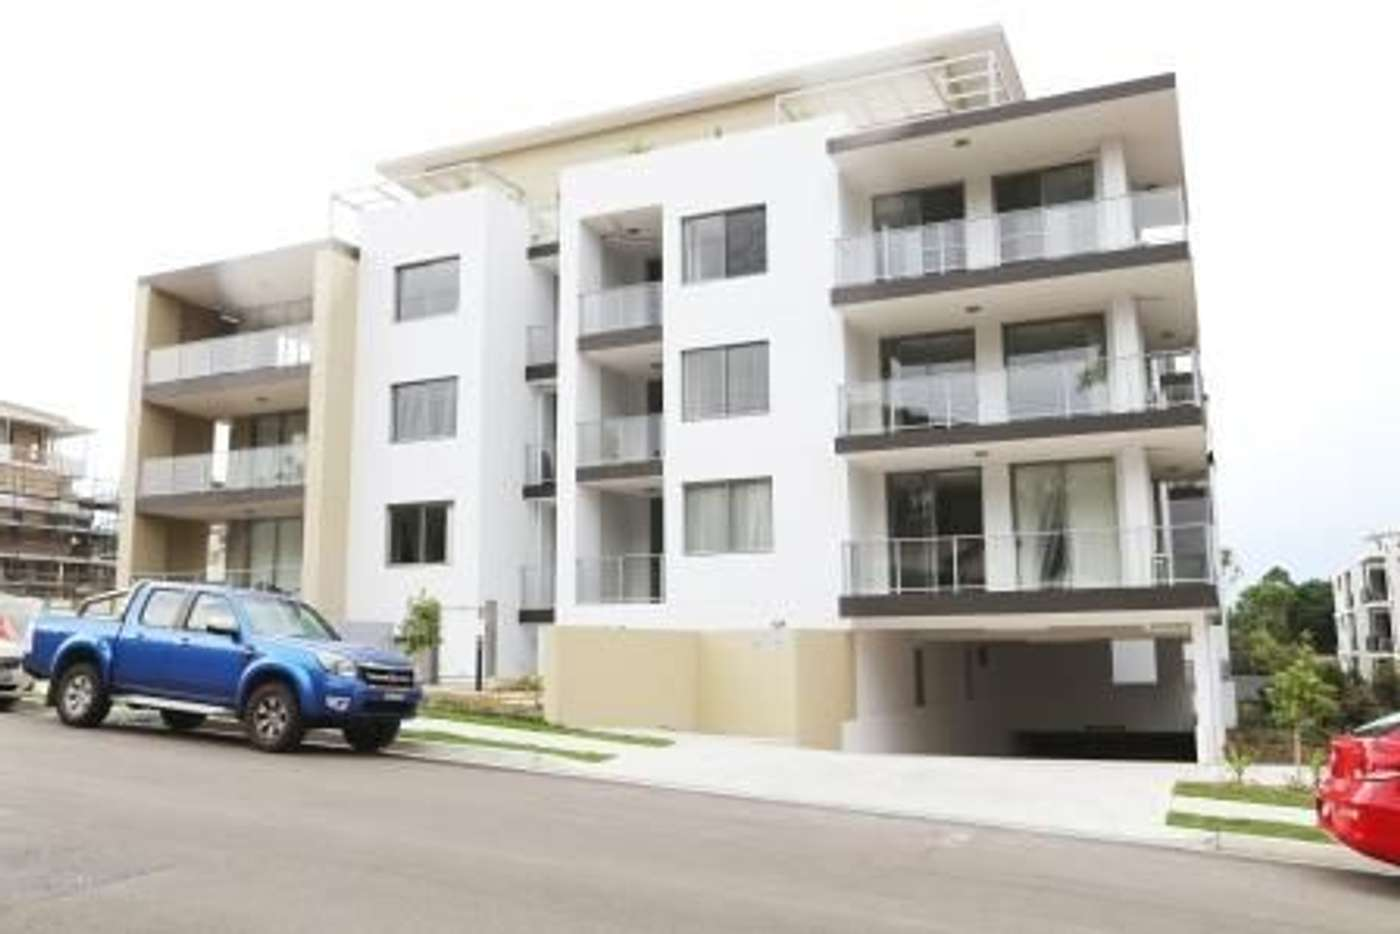 Seventh view of Homely apartment listing, 5/54-56 Keeler Street, Carlingford NSW 2118